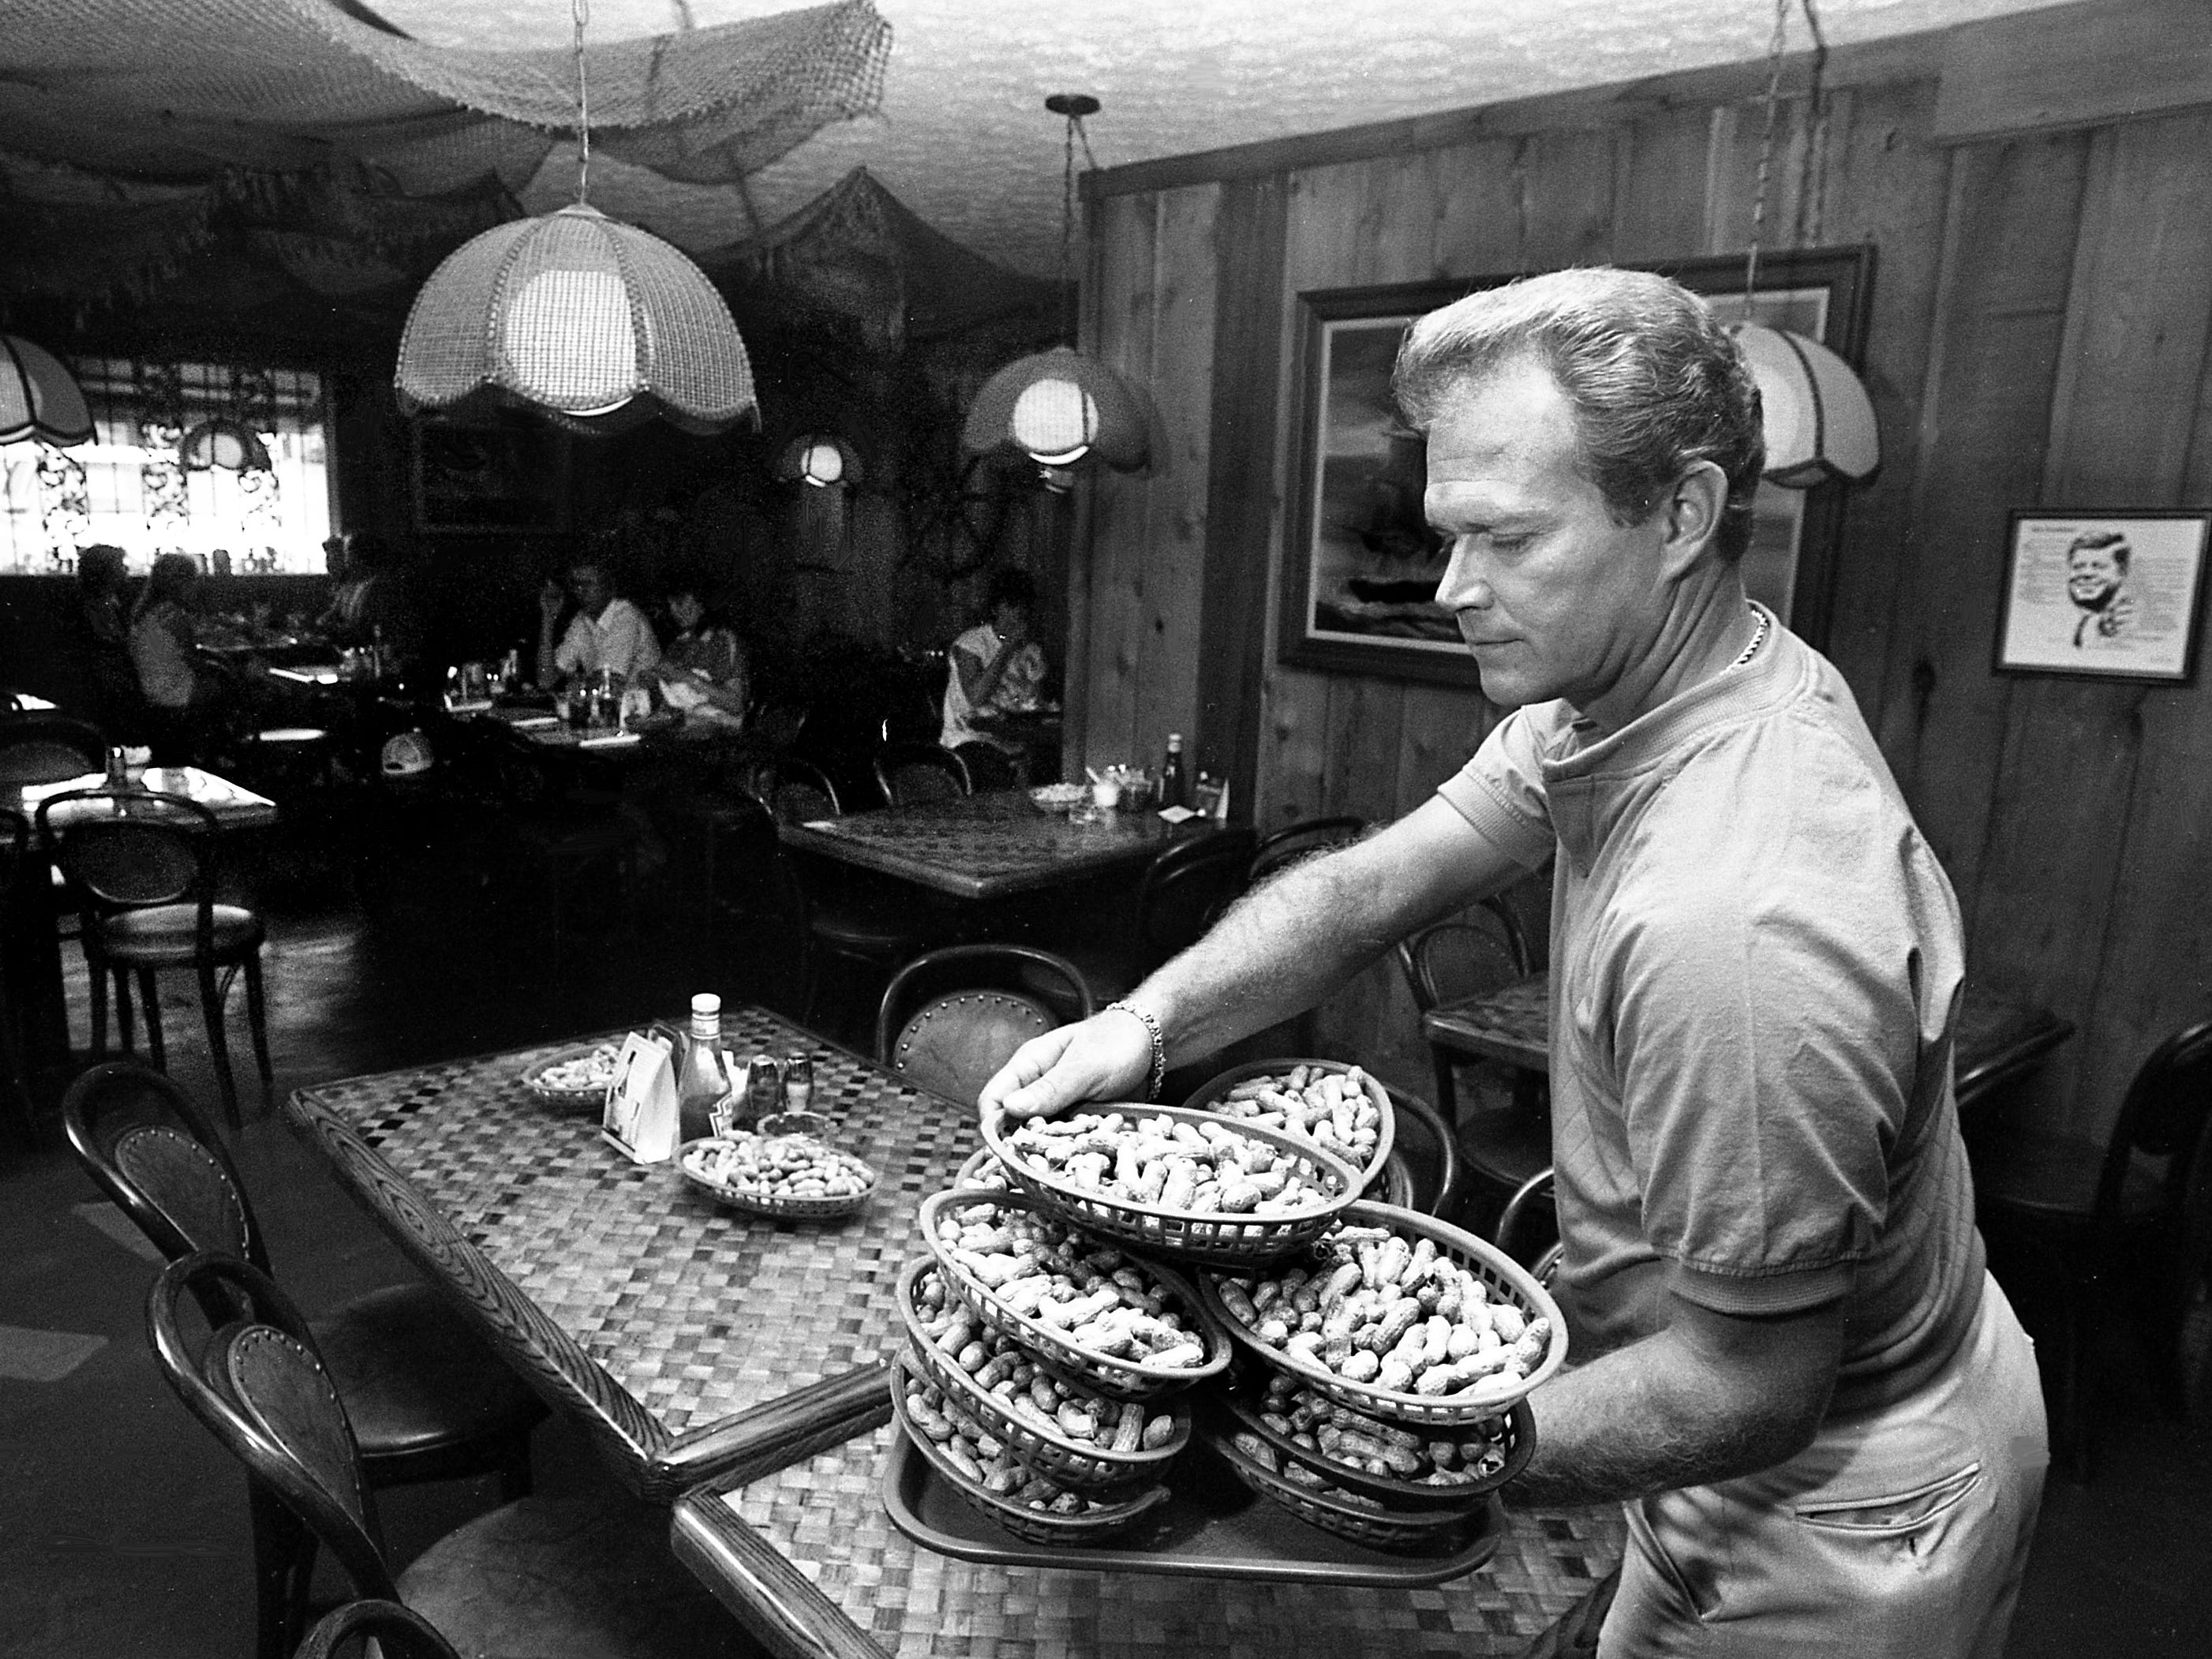 Bill Carmen, owner of The Shack Seafood Restaurant, is getting ready to welcomes patrons June 9, 1987 with a complimentary bowl of peanuts - and isn't at all distressed when the floor is littered with shells. The Shack, in a building reminiscent of coastal seafood shanties, is about two miles north of Rivergate Mall and has been serving the area for 13 years.